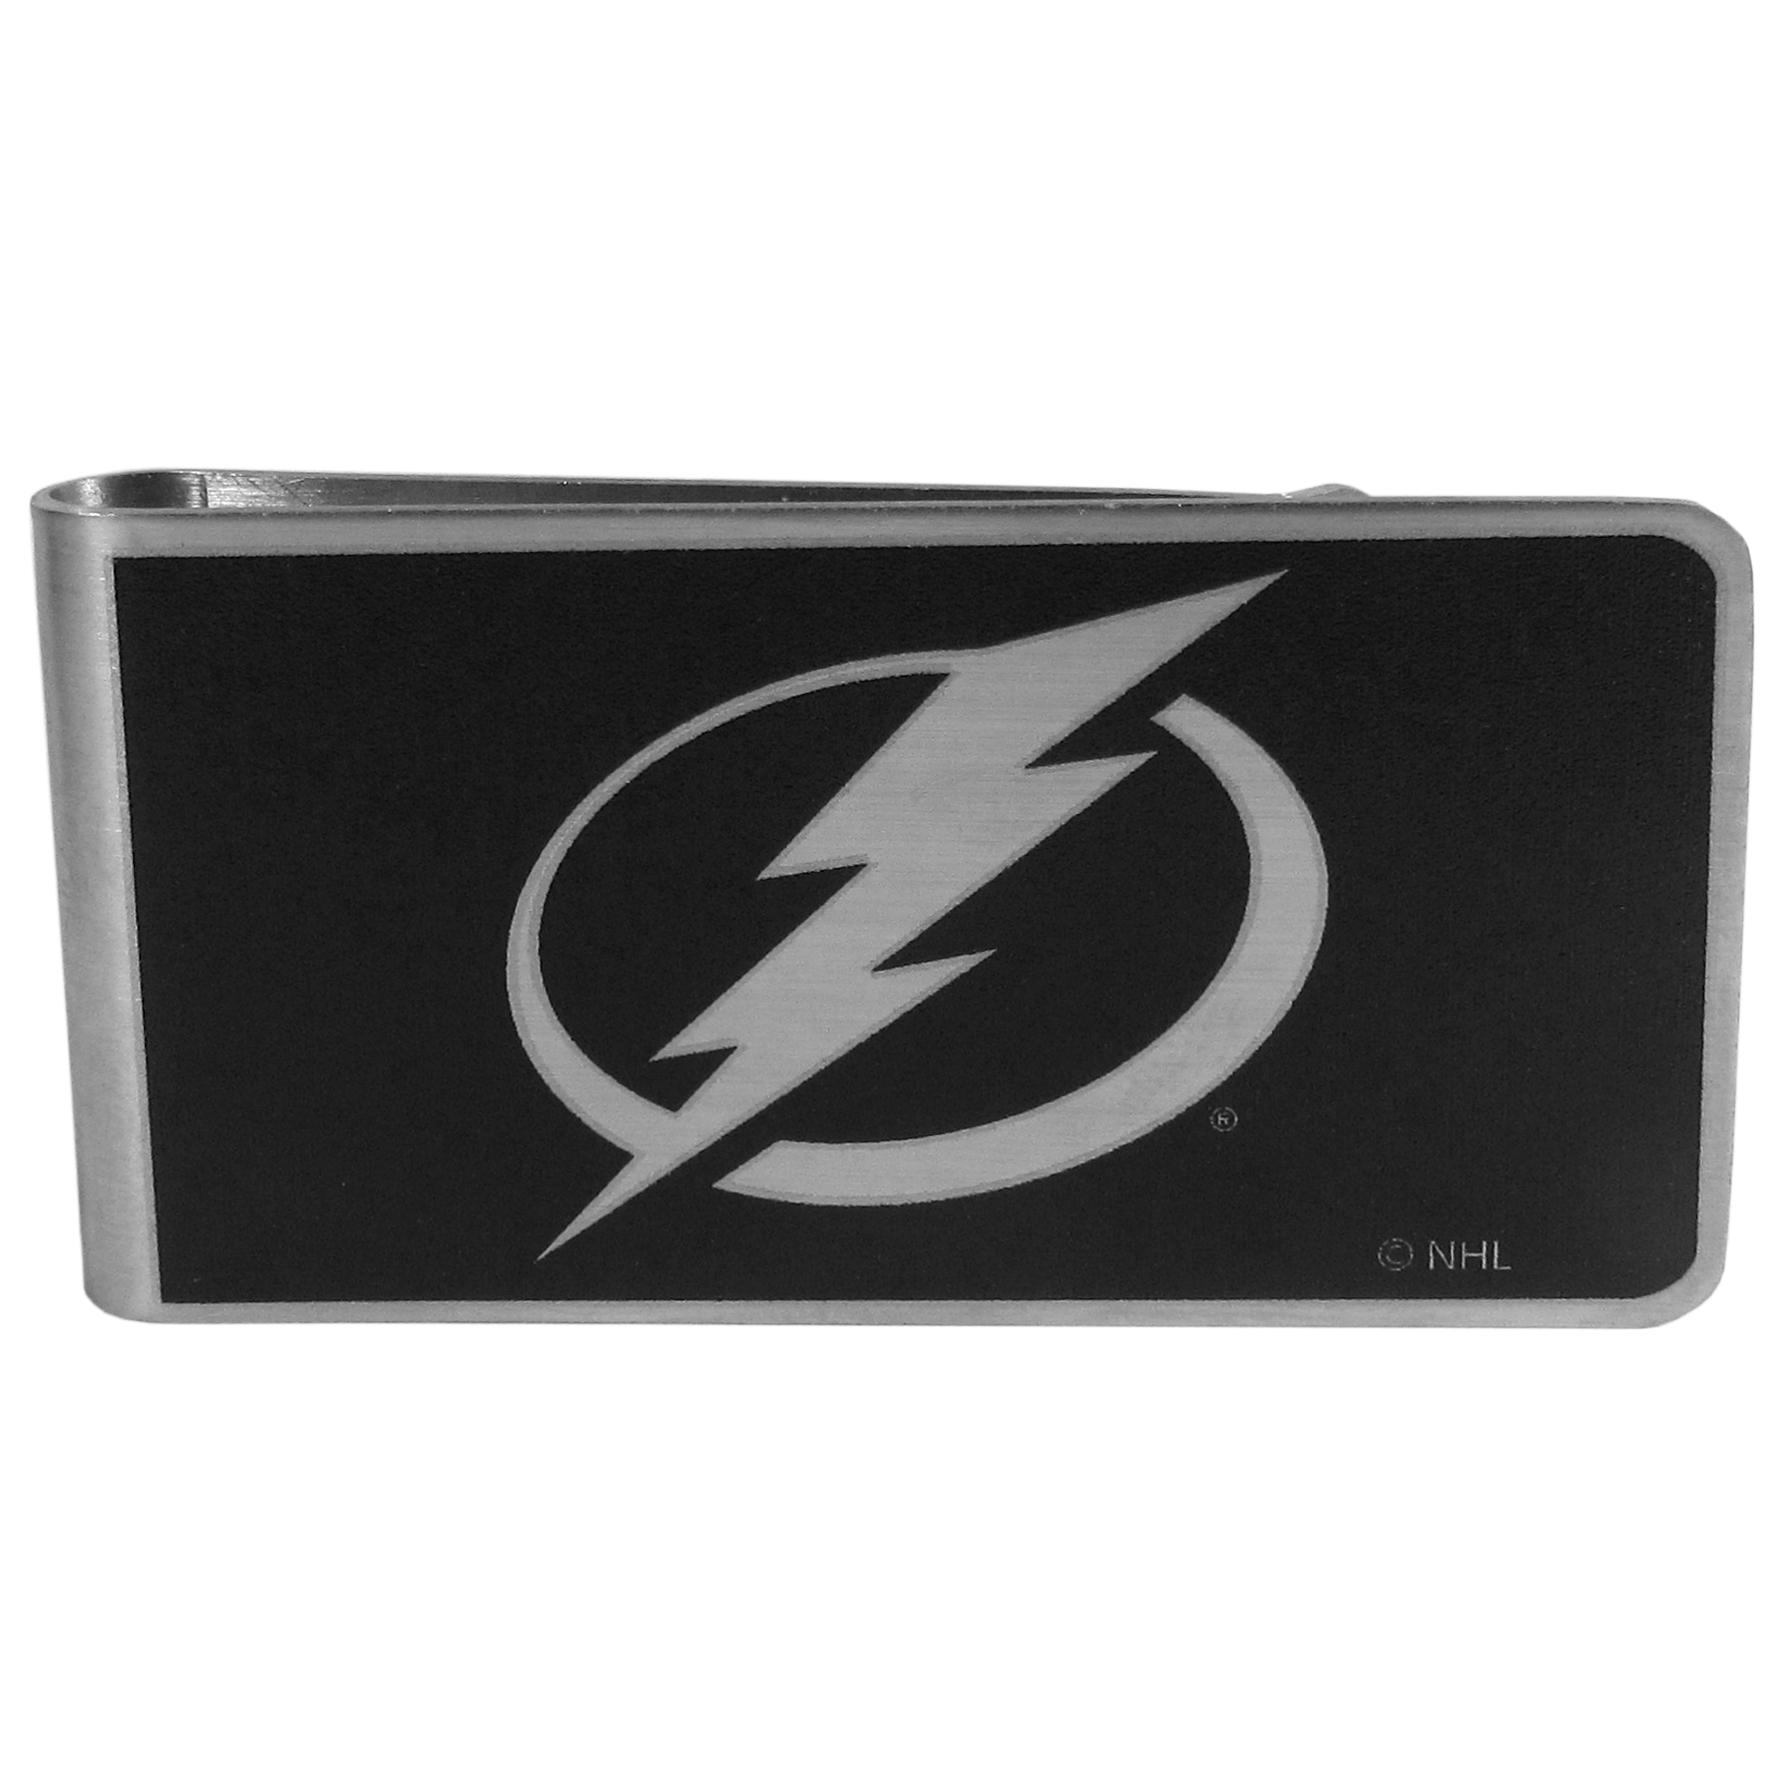 Tampa Bay Lightning® Black and Steel Money Clip - Our monochromatic steel money clips have a classic style and superior quality. The strong, steel clip has a black overlay of the Tampa Bay Lightning® logo over the brushed metal finish creating a stylish men's fashion accessory that would make any fan proud.